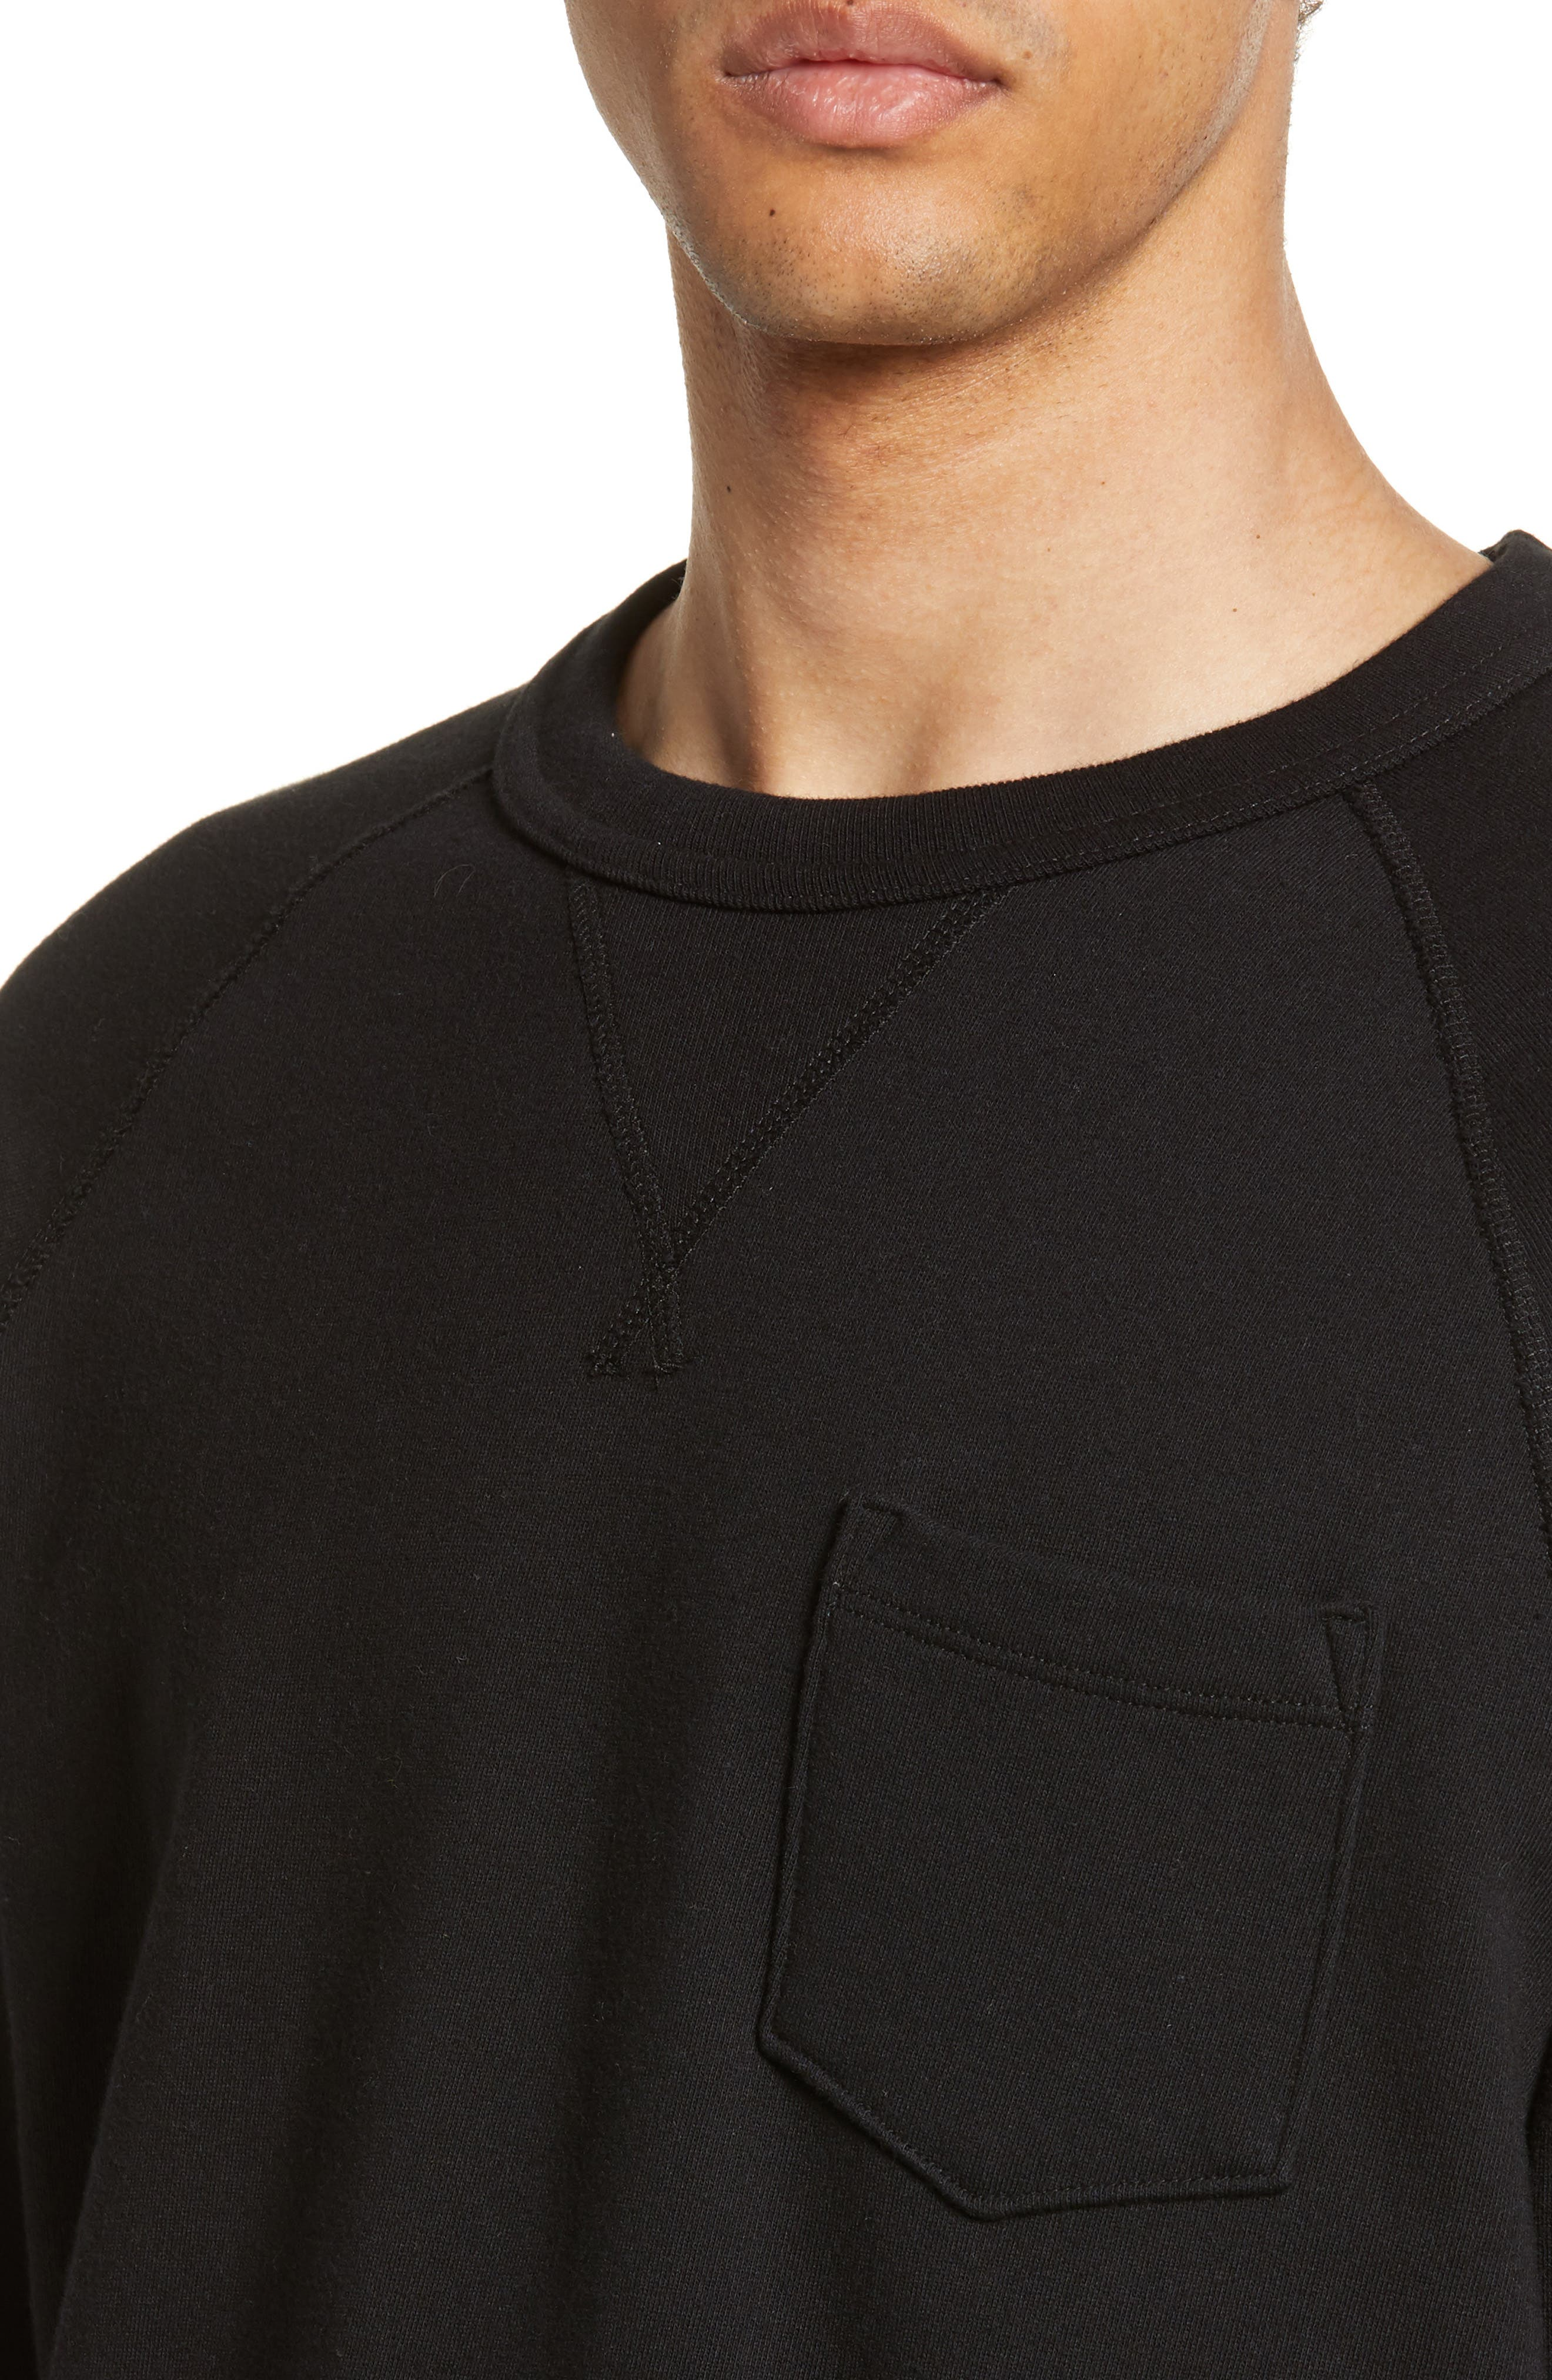 TODD SNYDER + CHAMPION, Todd Snyder Classic Pocket Sweatshirt, Alternate thumbnail 4, color, BLACK